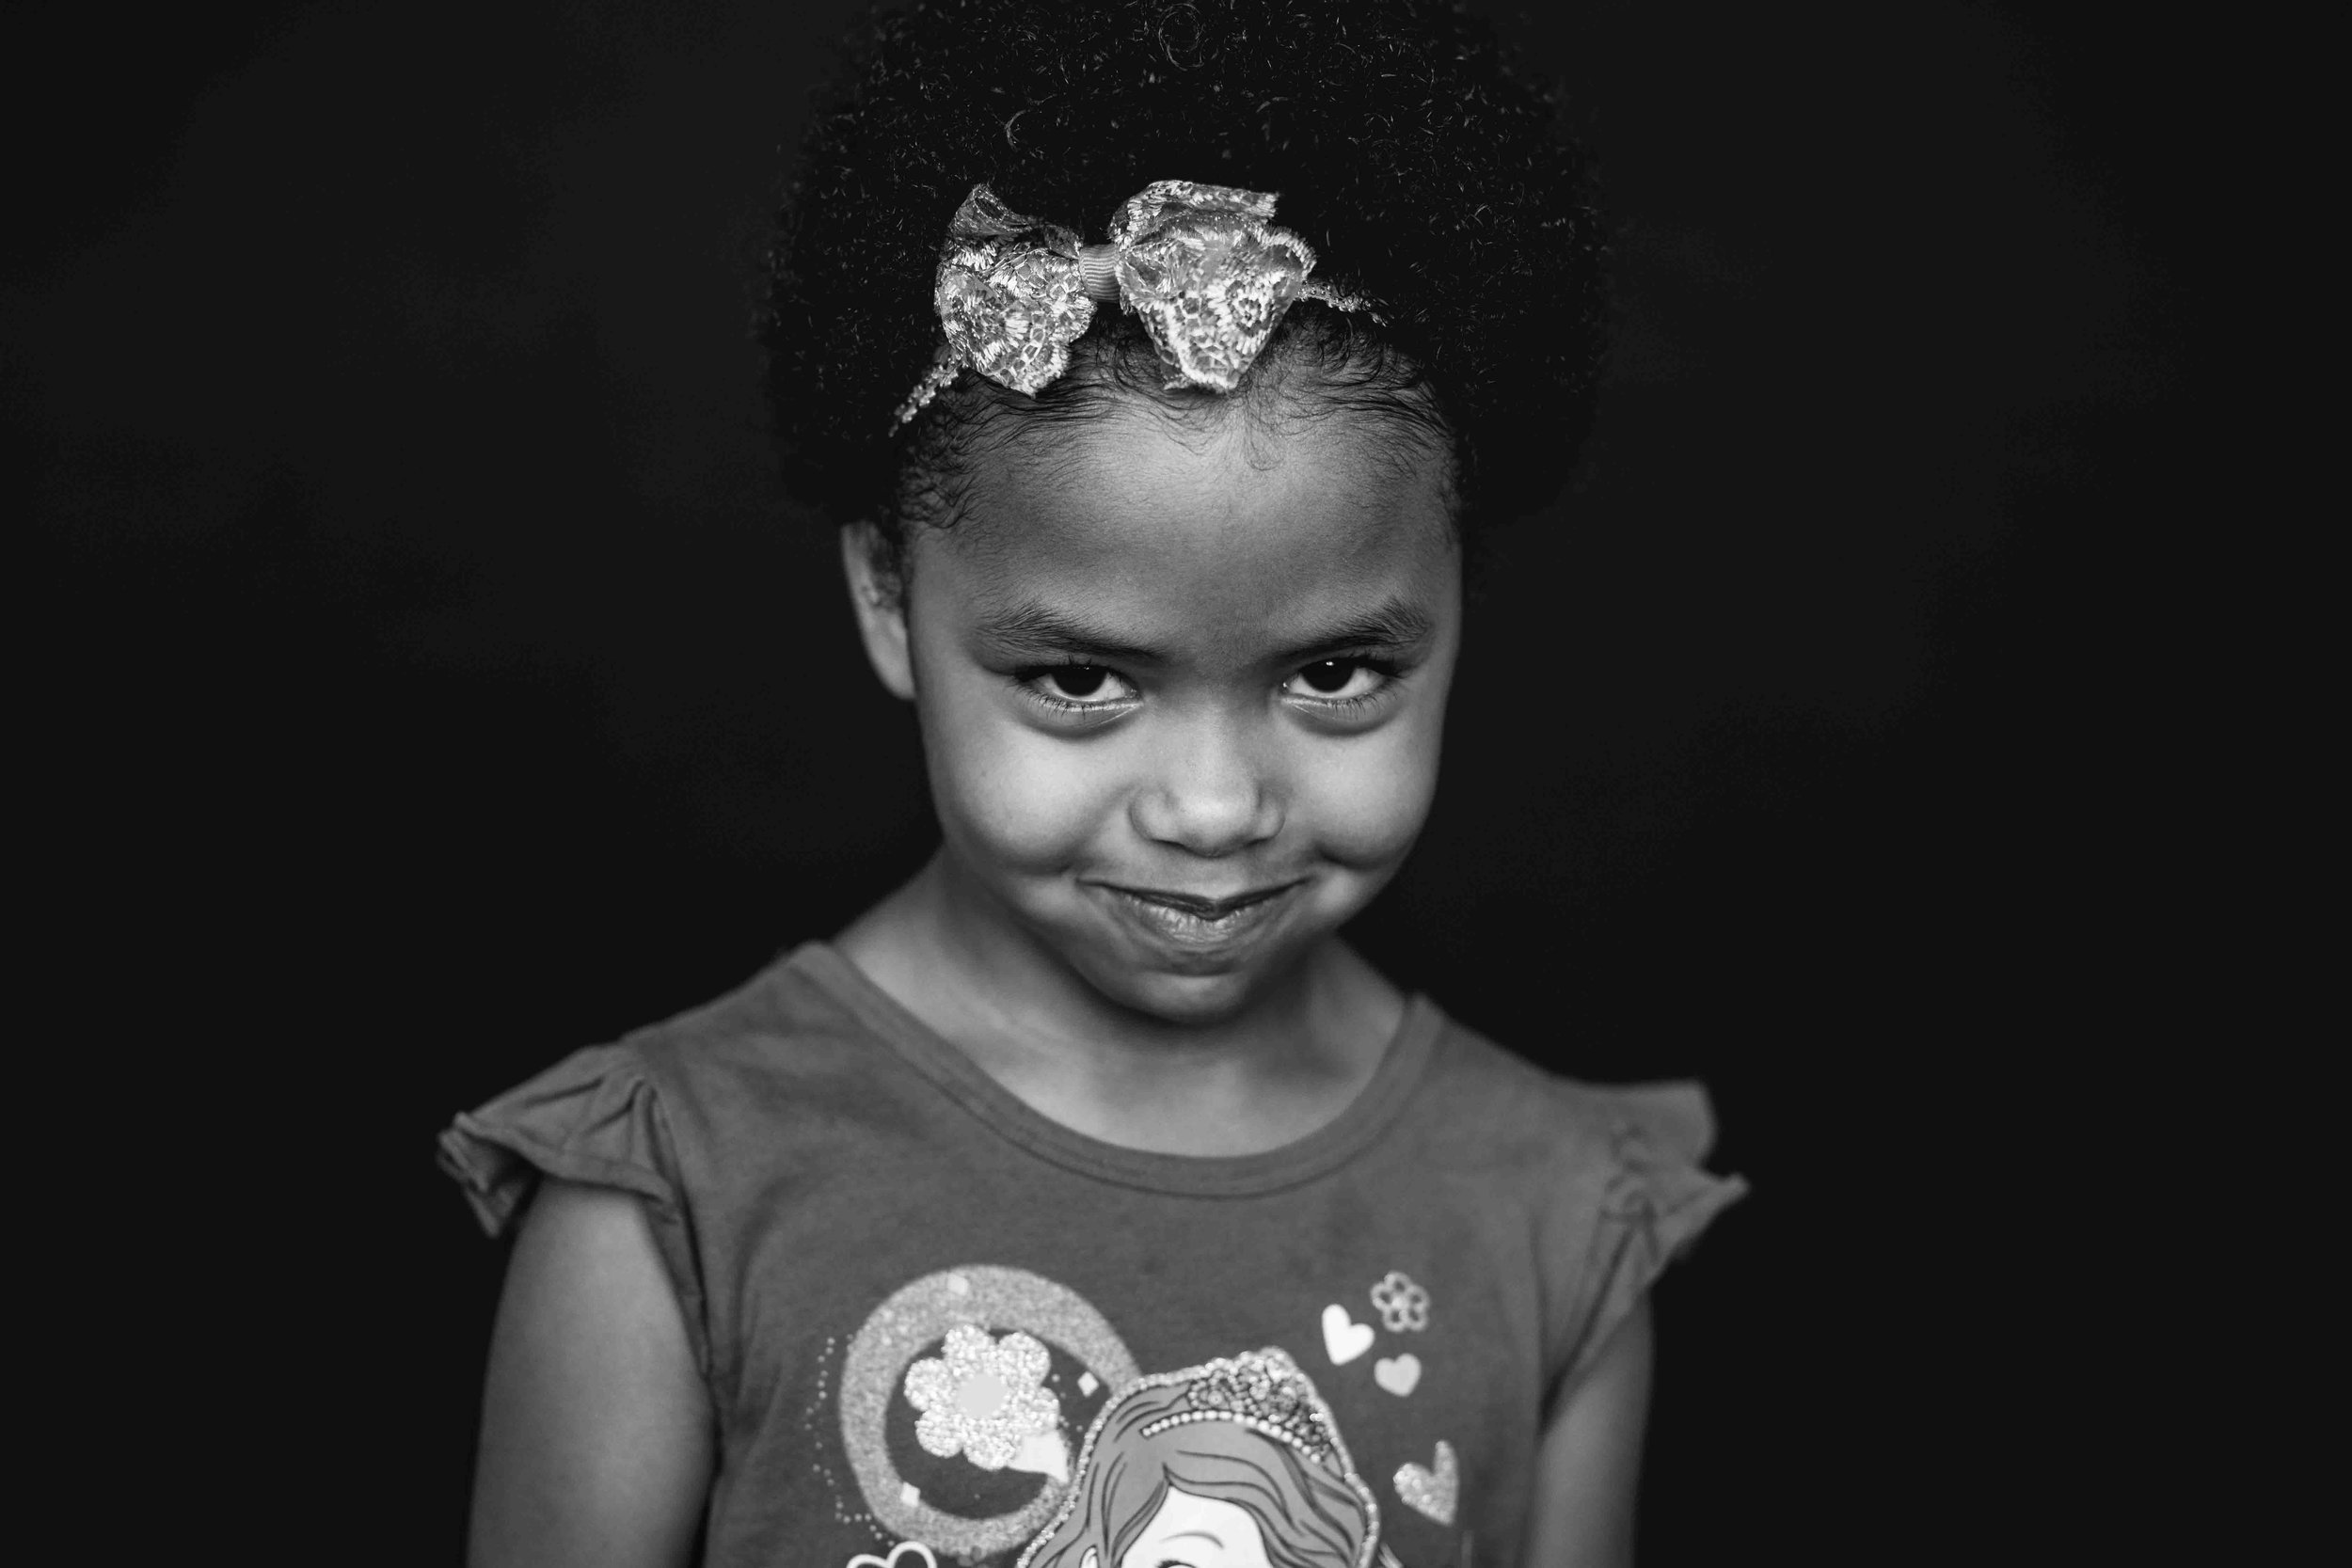 20180913_7606-- color--5day--preK--4yr----17----BLACK AND WHITE--324snowflake-pittsburgh-boutique-school-photography.jpg